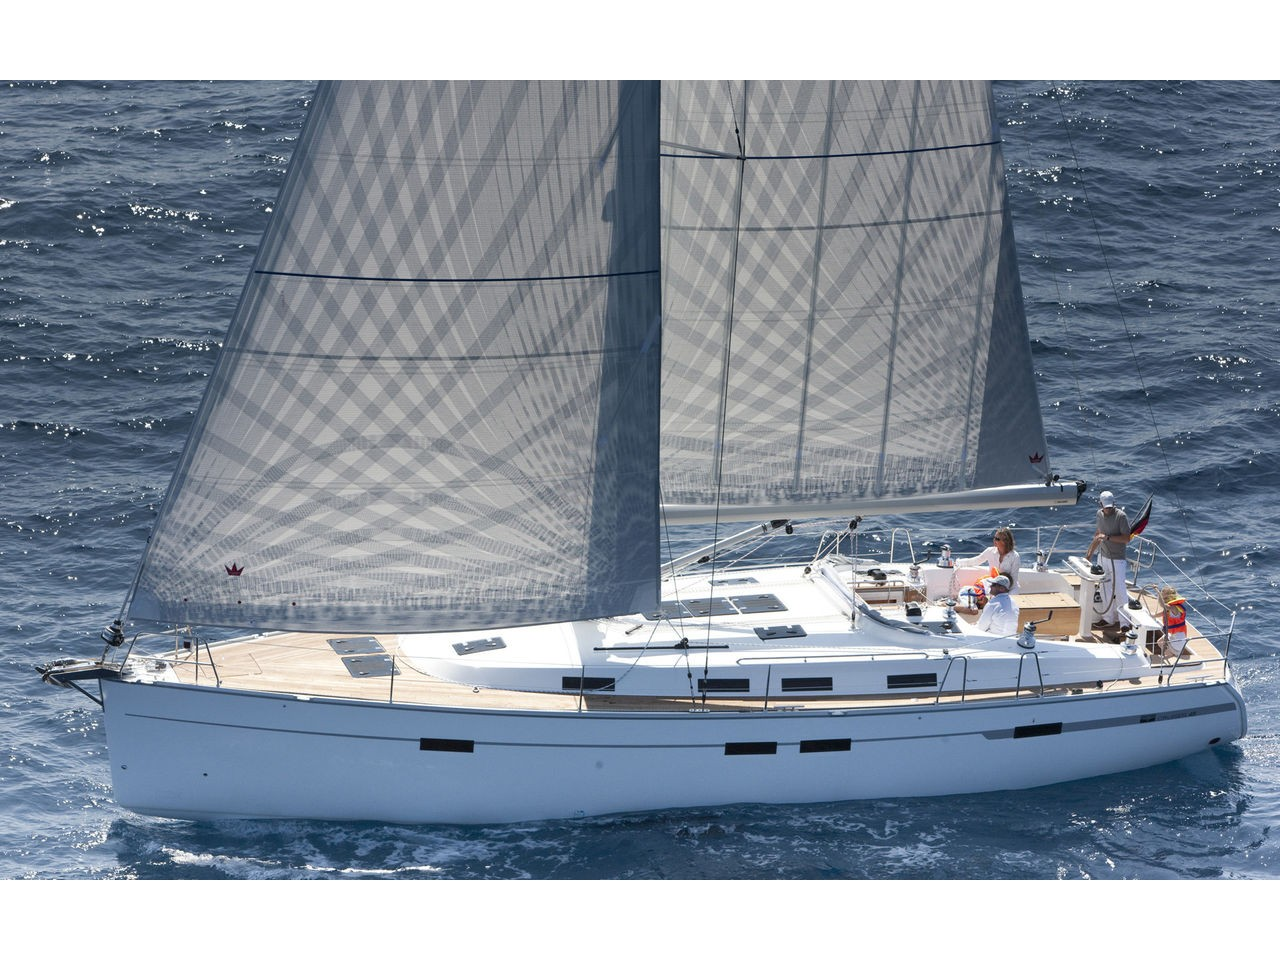 Yacht charter Bavaria 45 Cruiser - Spain, Balearic Islands, Ibiza